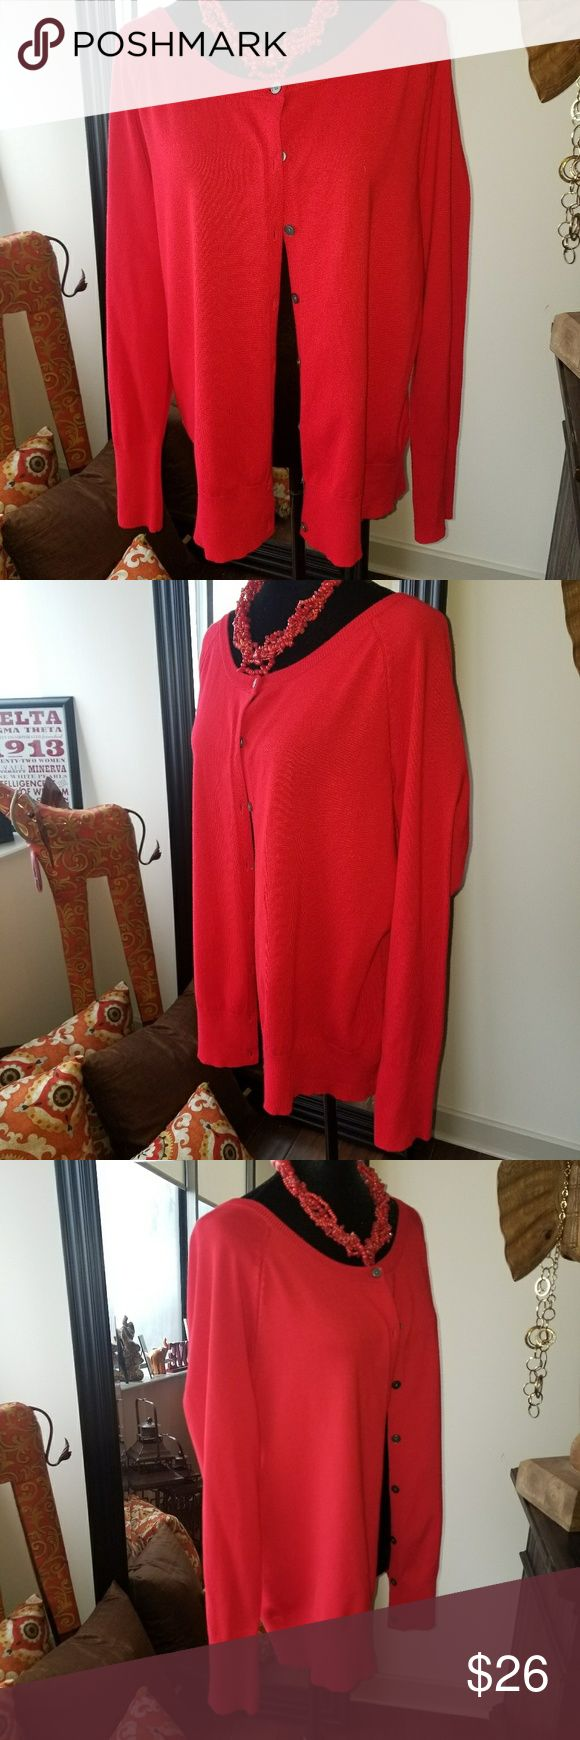 Red Cardigan Sweater A red cardigan sweater that is veru good condition. This sweater was just sitting in the closet collecting dust. Lane Bryant Sweaters Cardigans